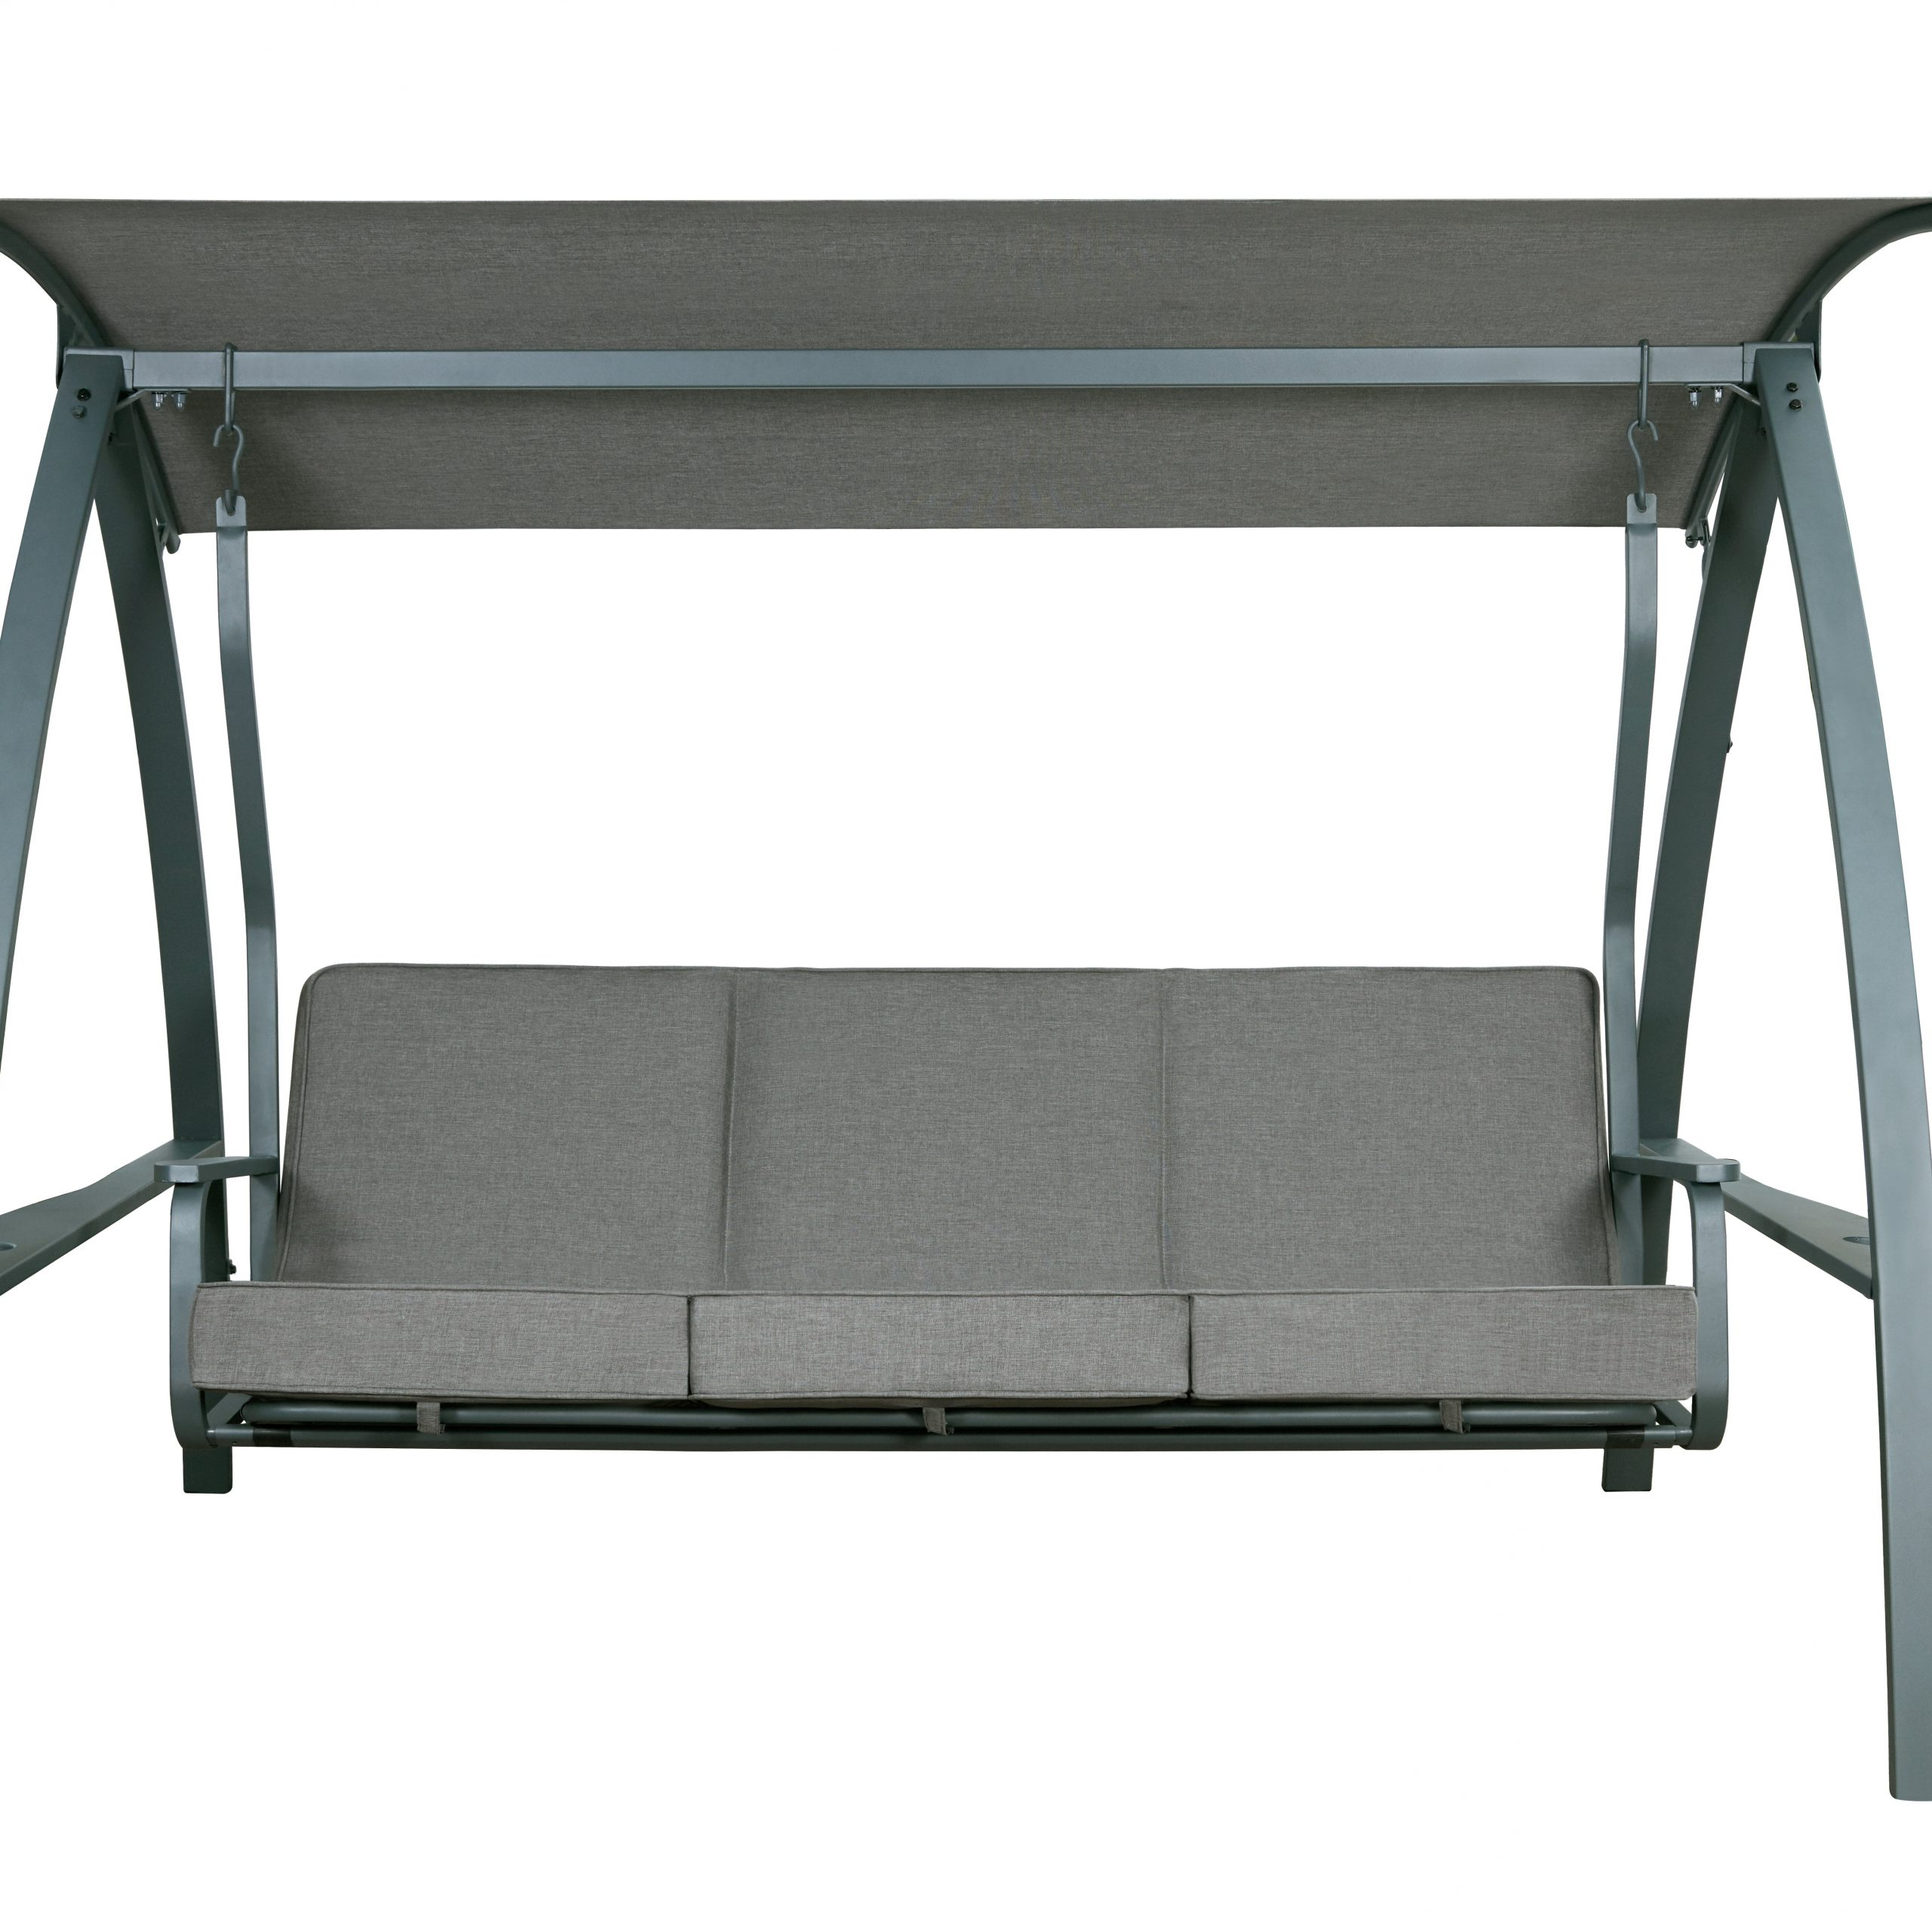 Daybed Porch Swings With Stand Regarding Well Liked Marquette 3 Seat Daybed Porch Swing With Stand (View 8 of 30)